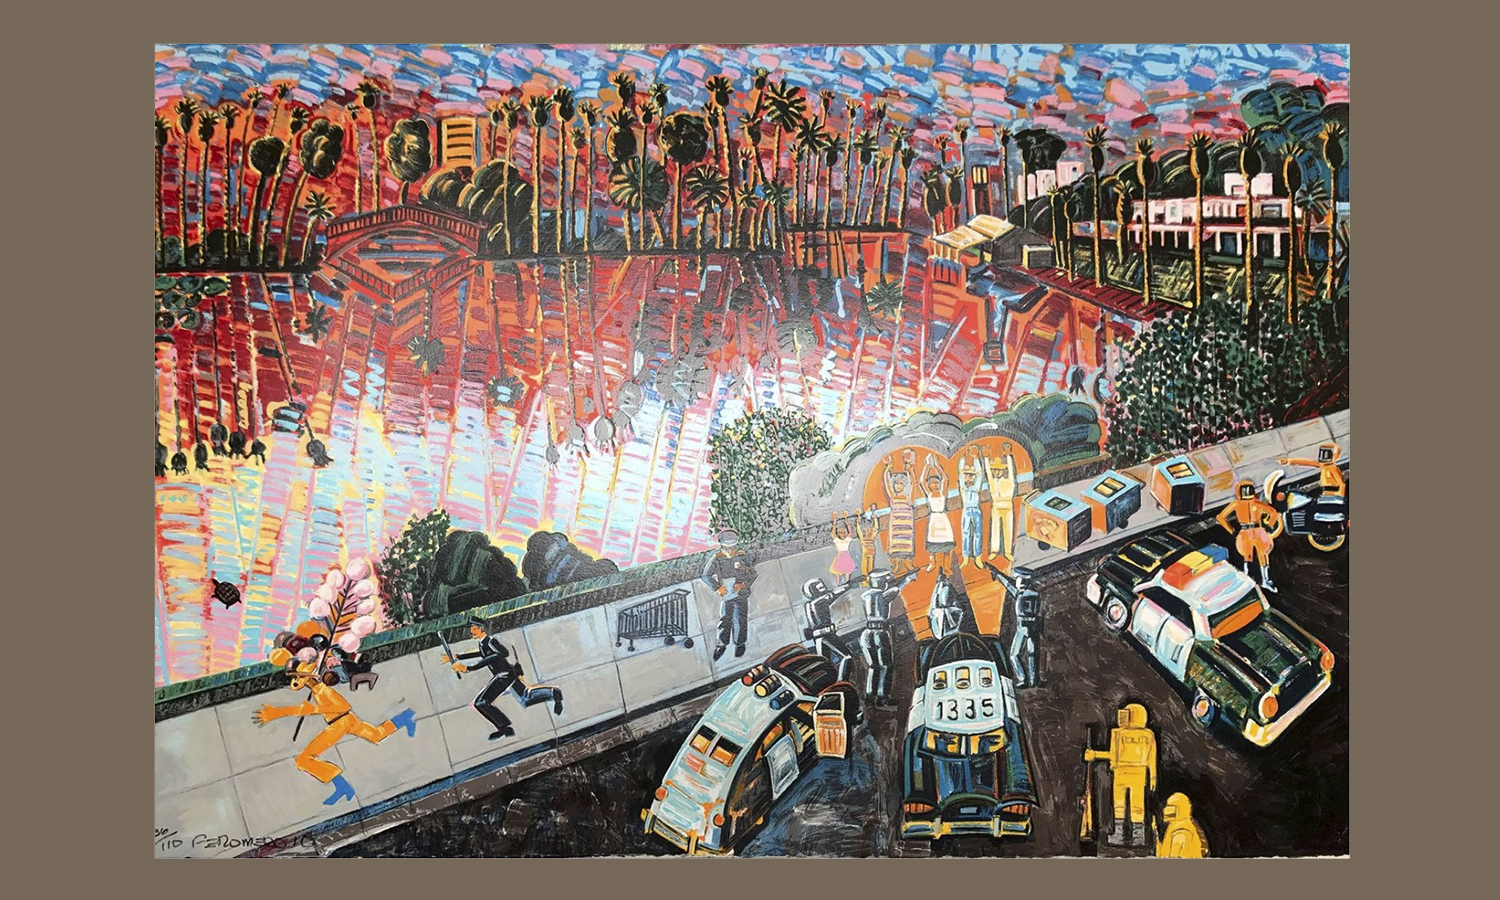 """Arrest of the Paleteros,"" 32 color serigraph, by Frank Romero in 2010, Gallery purchase, Freinds of Houghton - Paula Kalenik '71"